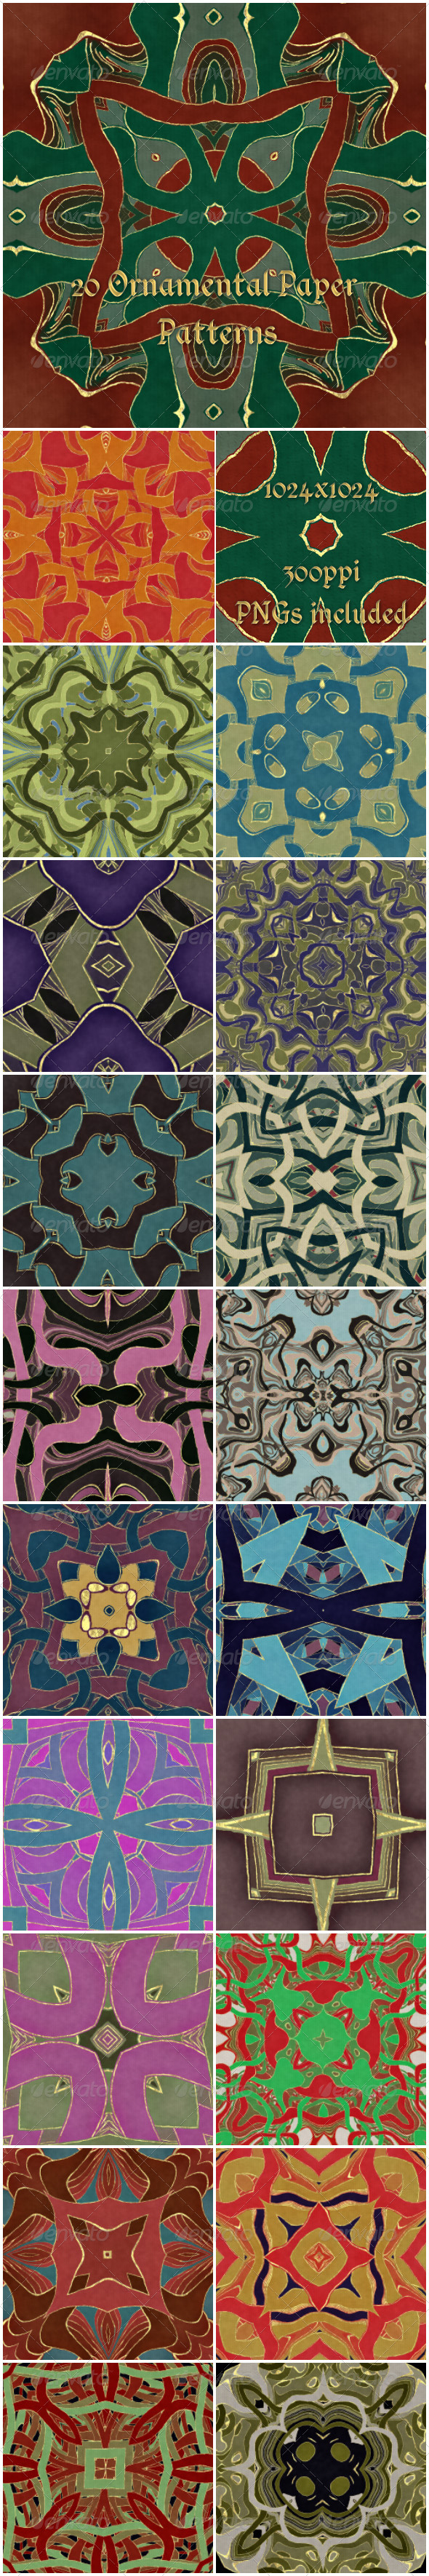 GraphicRiver 20 Ornamental Paper Patterns 6326475